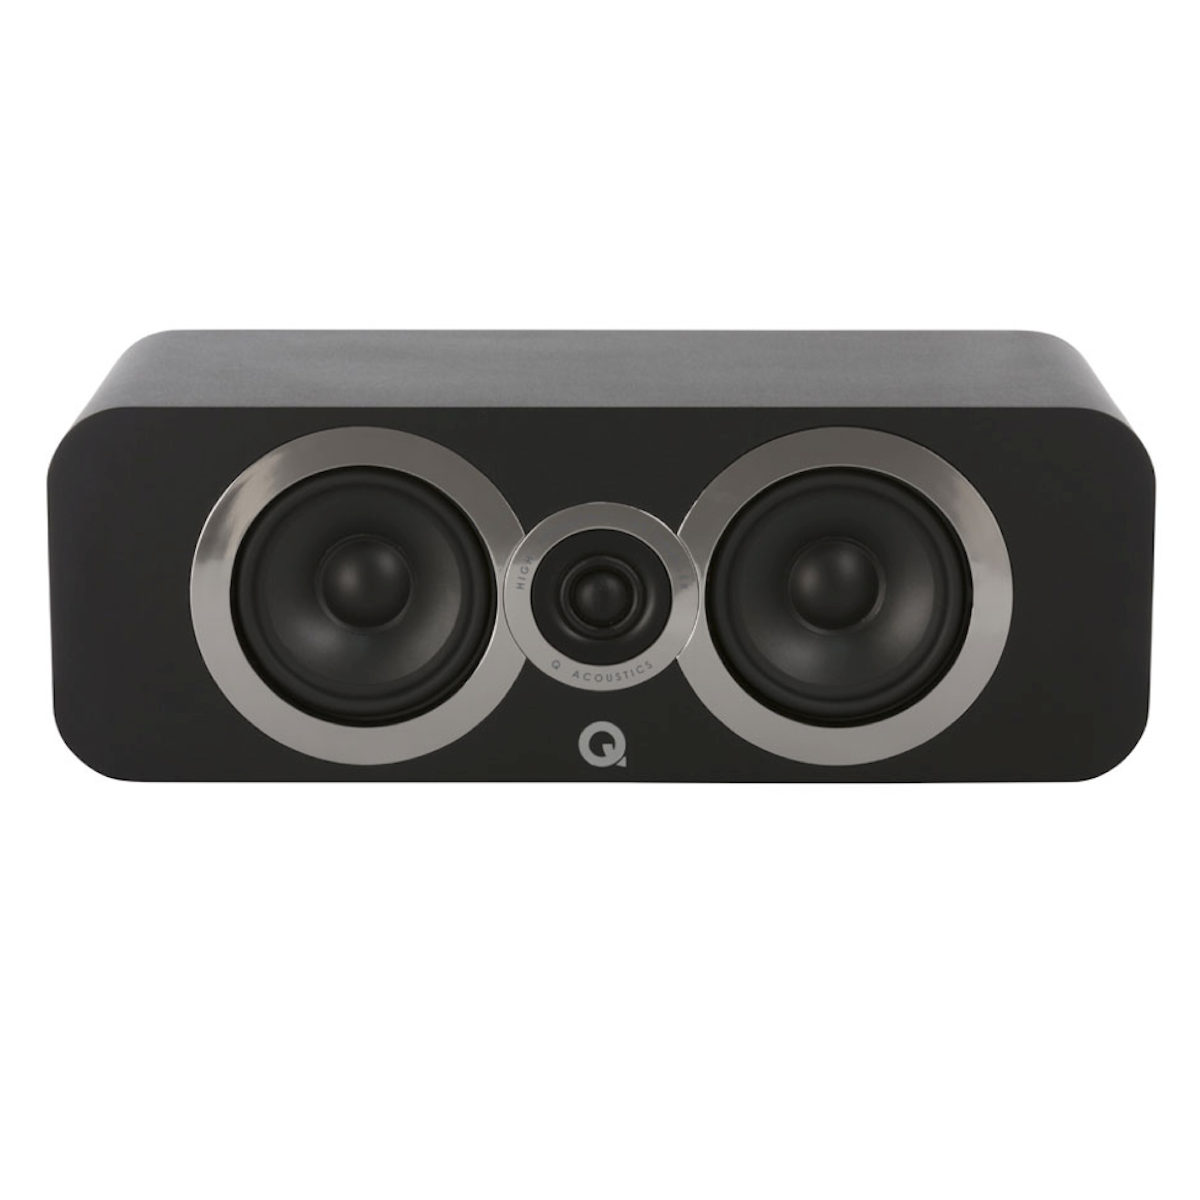 Q-Acoustics 3050i Home Theater Speaker Package - AVStore.in